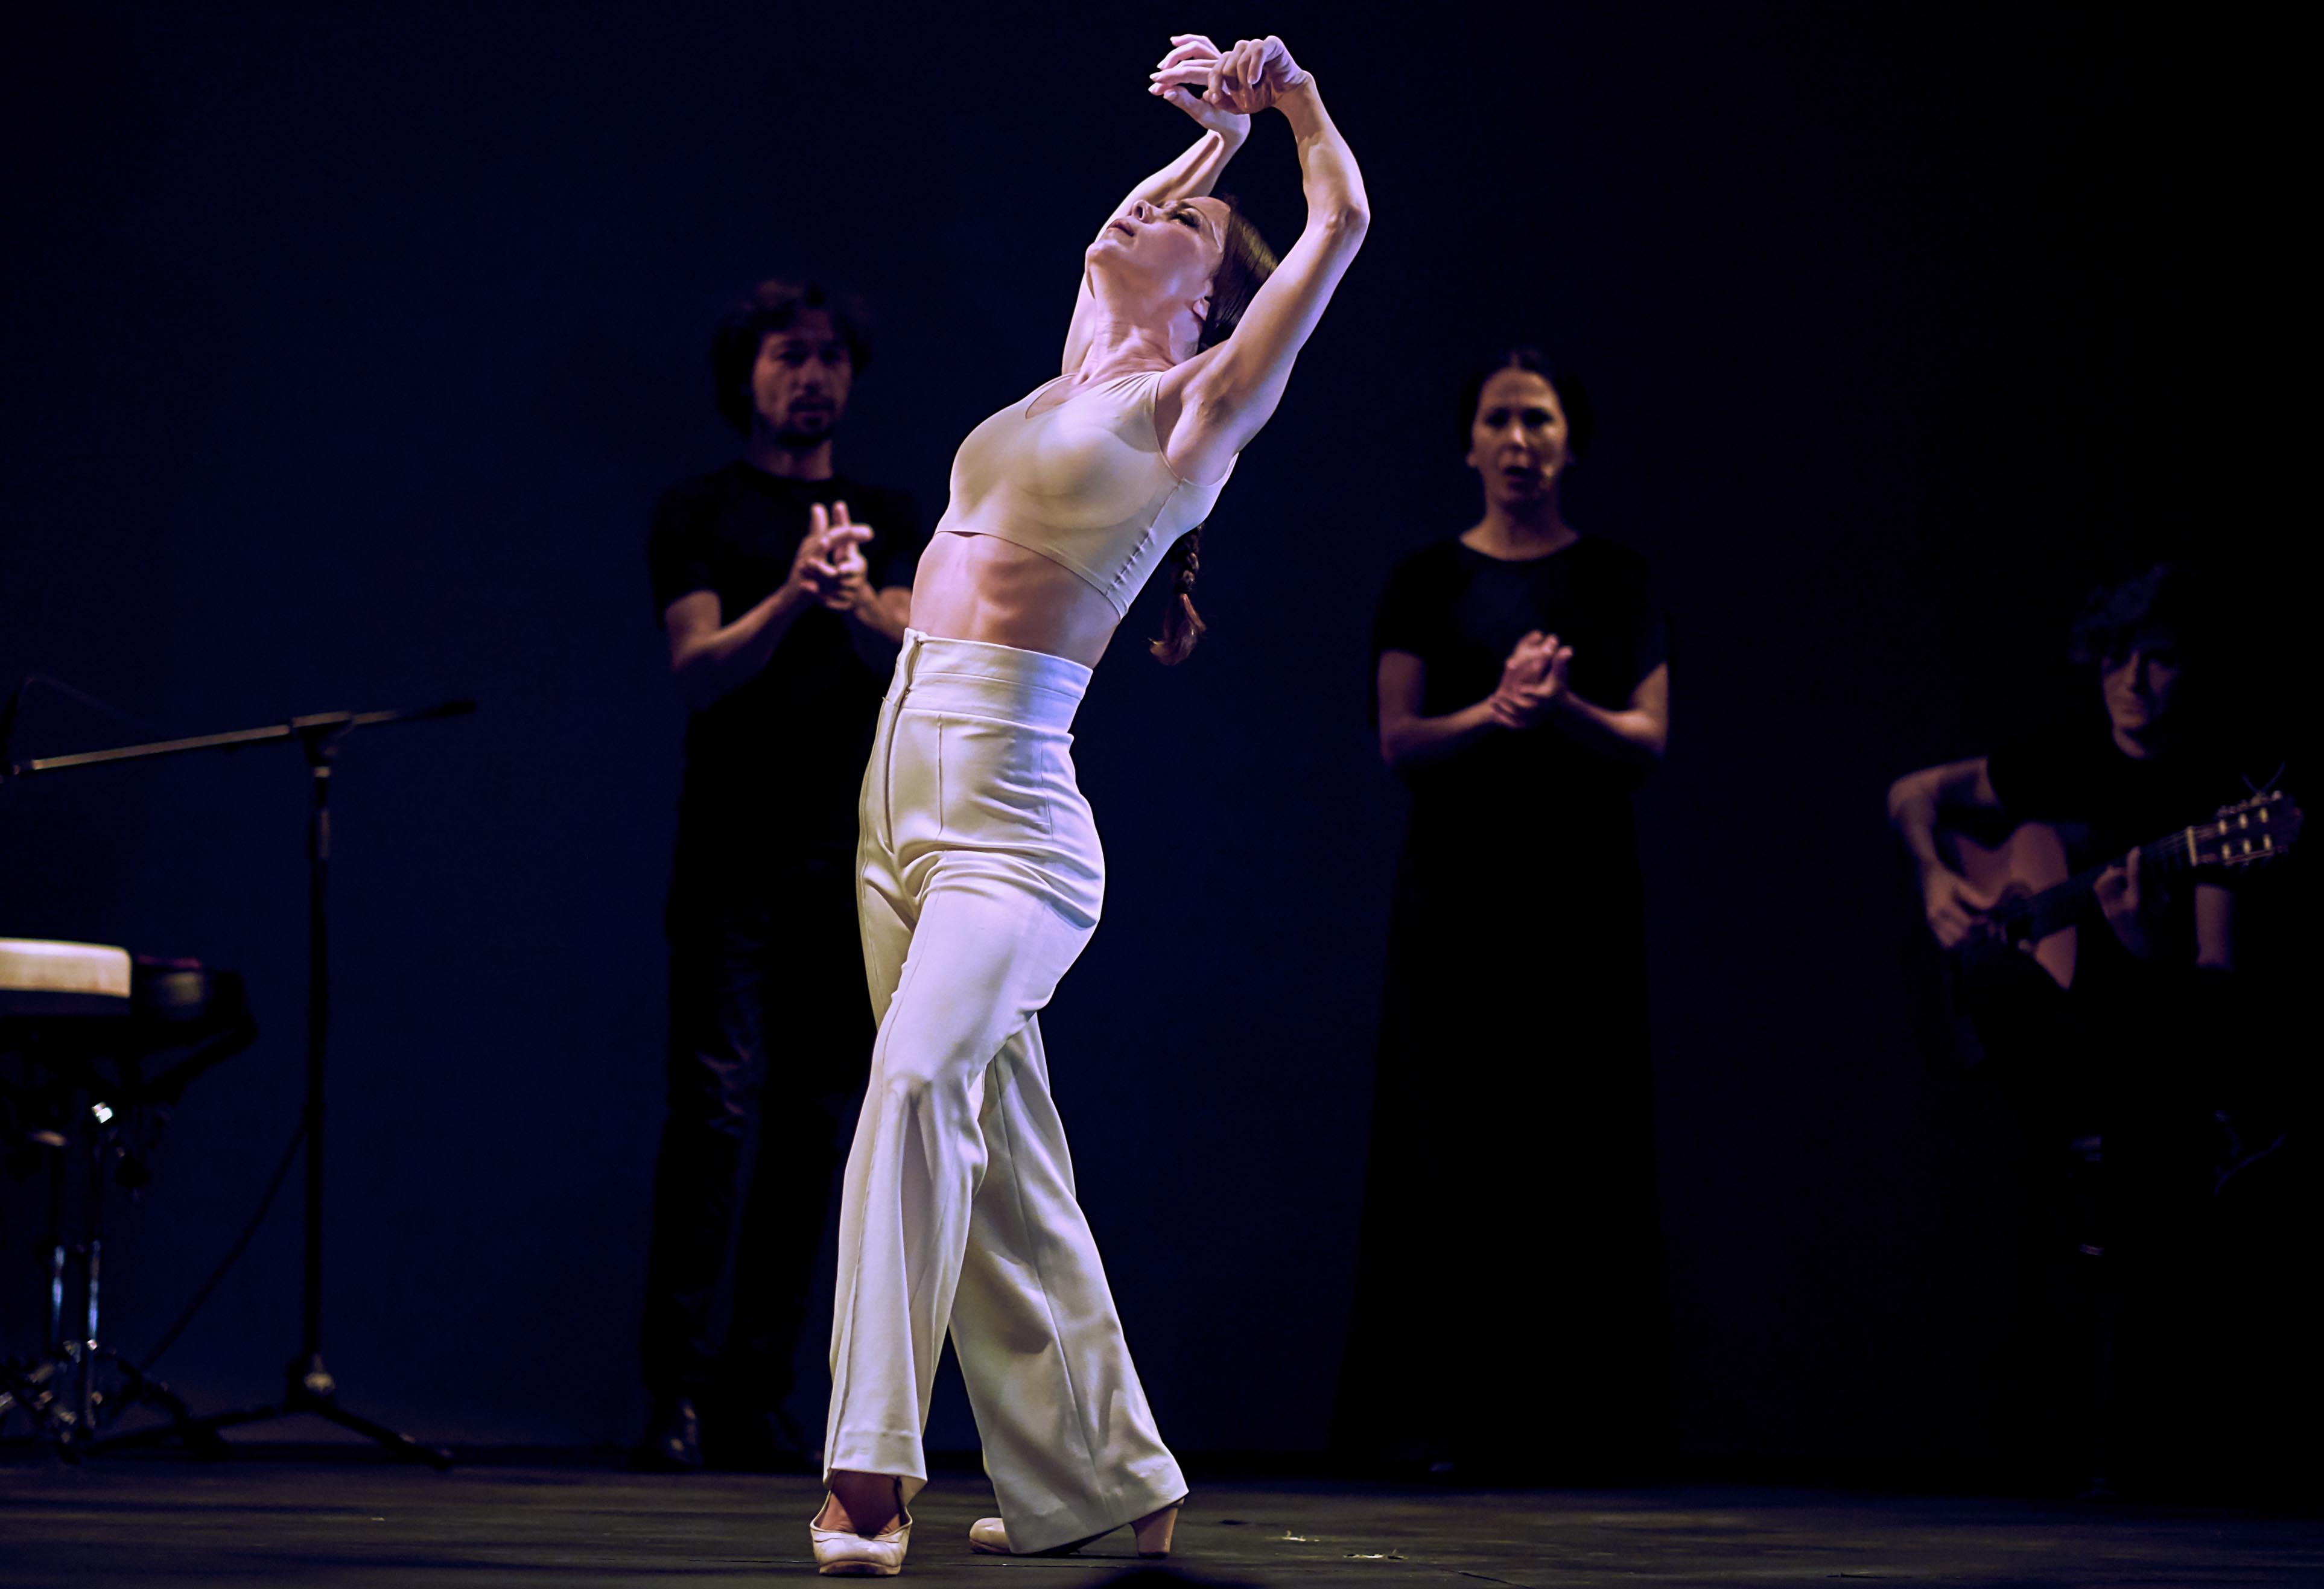 OLGA PERICET IS AWARDED WITH THE TOP NATIONAL DANCE PRIZE IN SPAIN